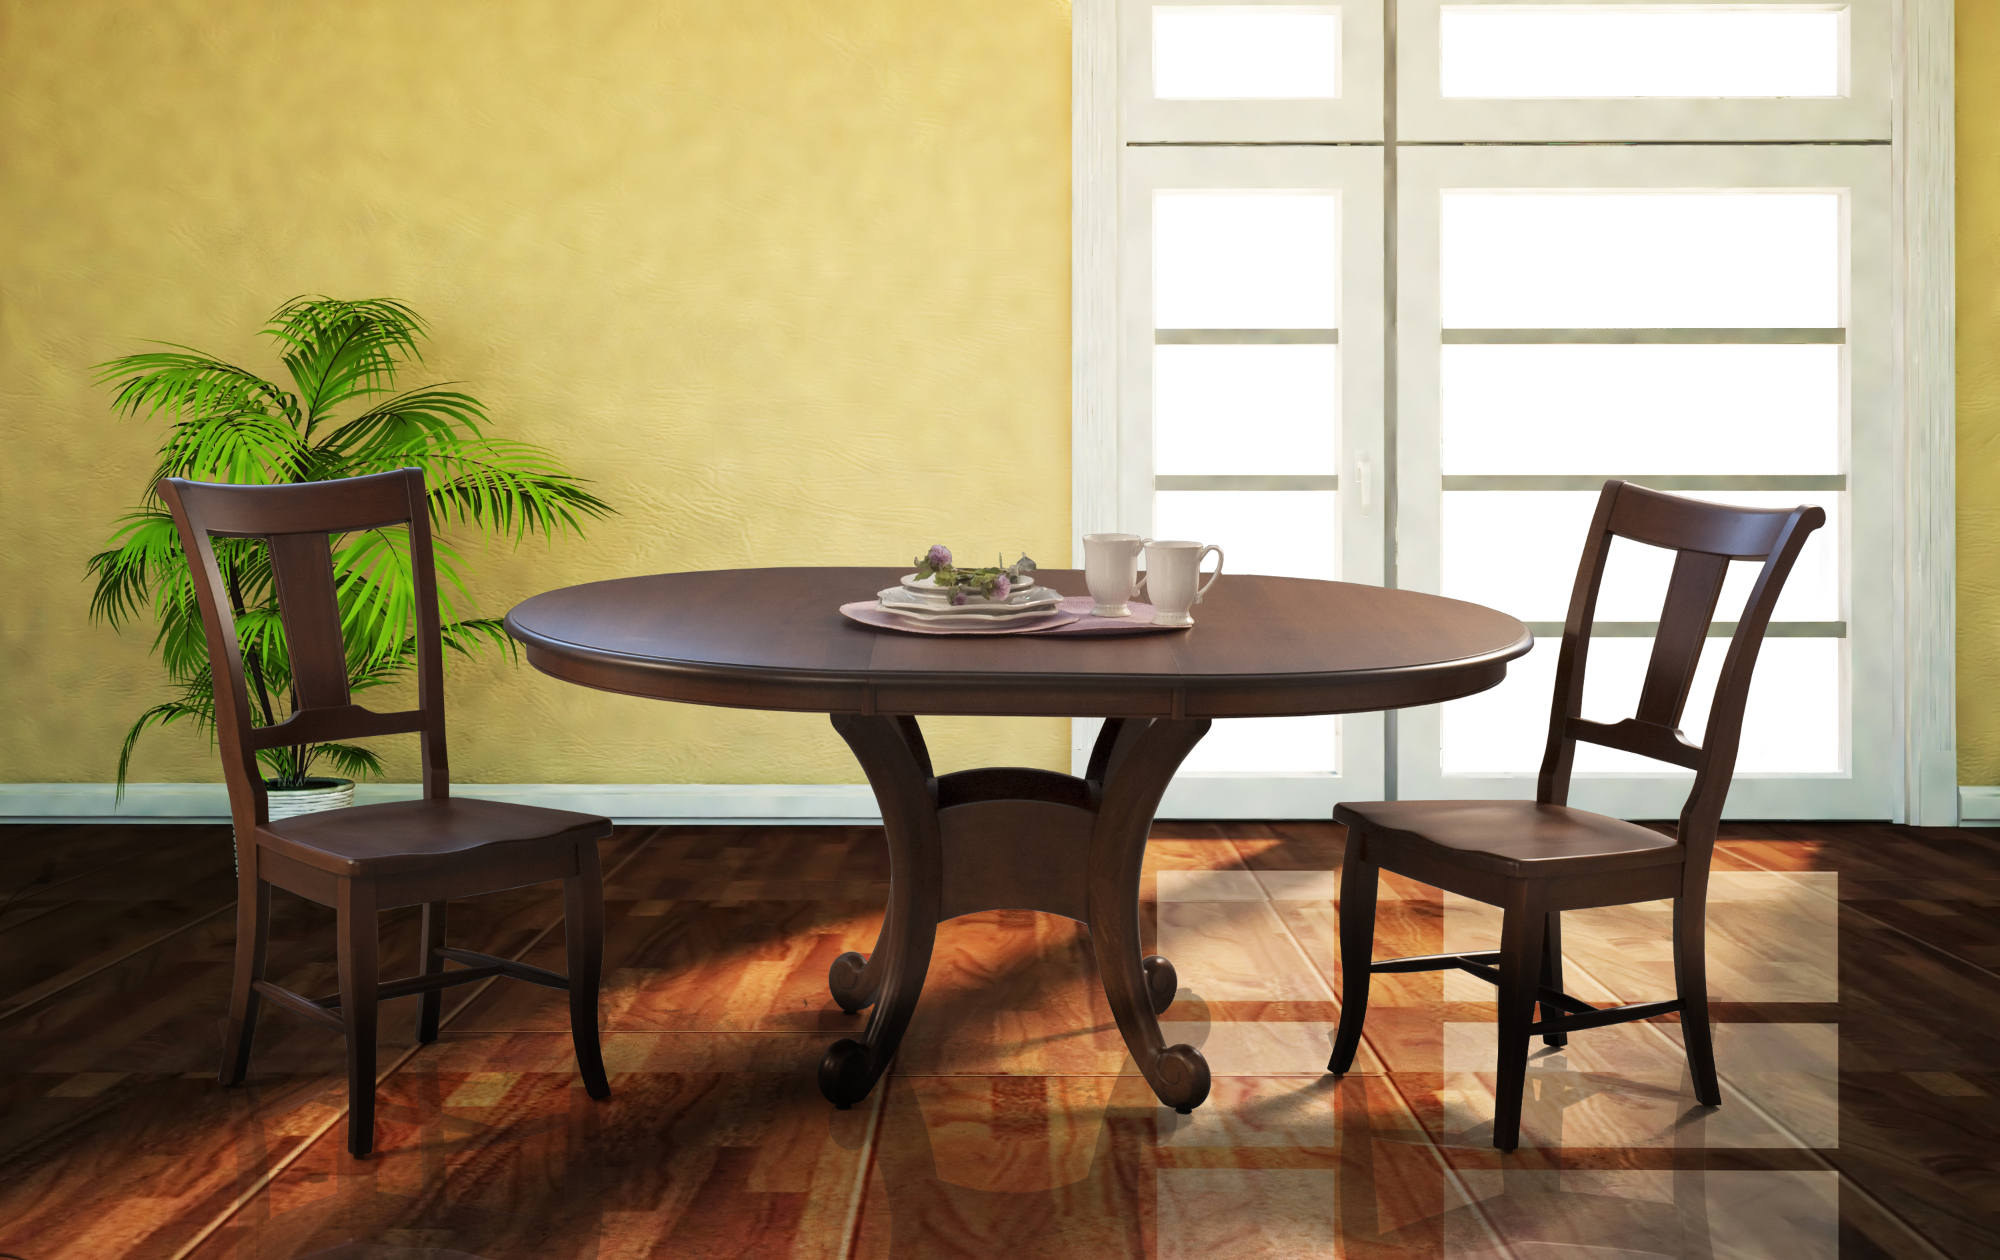 Neptune Dining Table – Saloom Furniture pany